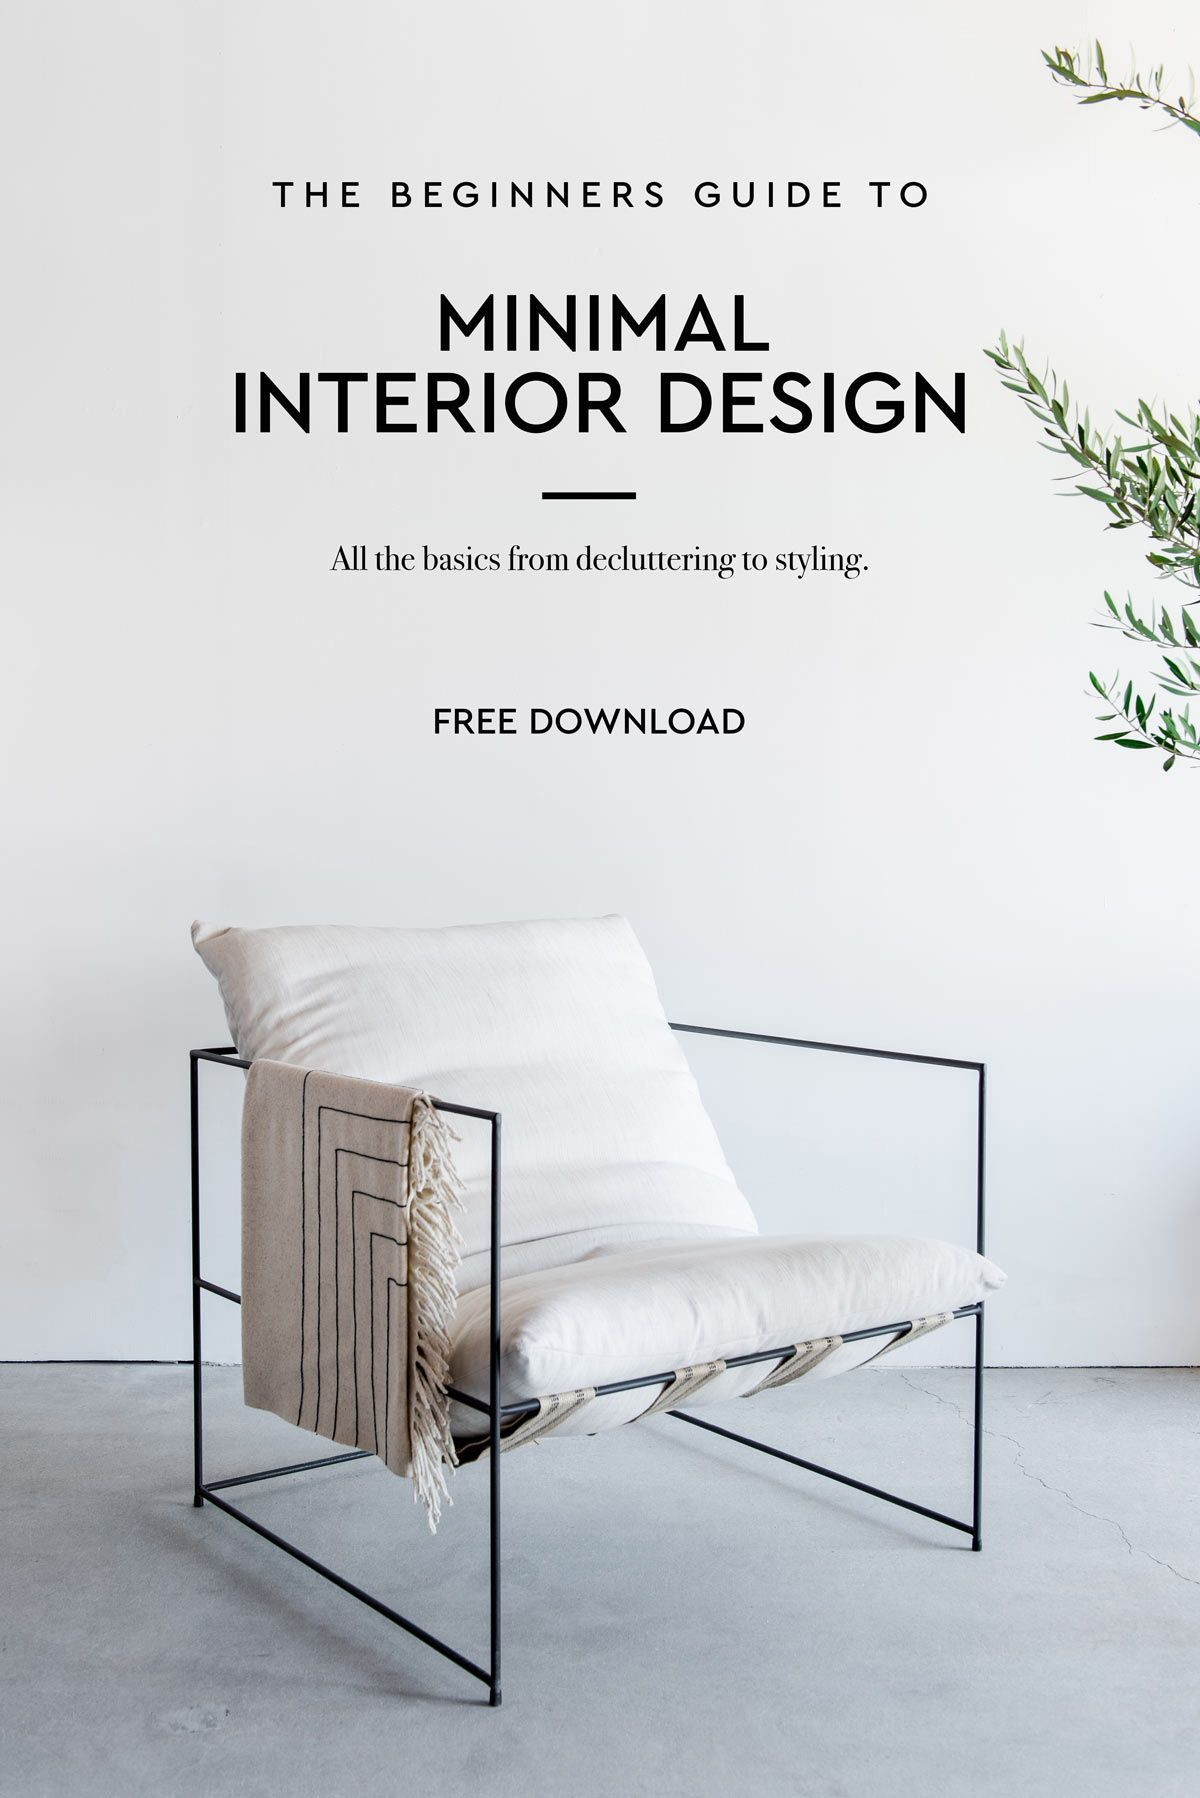 Freebie free download minimal home decor guide interior design decoration minimalism ebook freeinteriordesign also rh pinterest